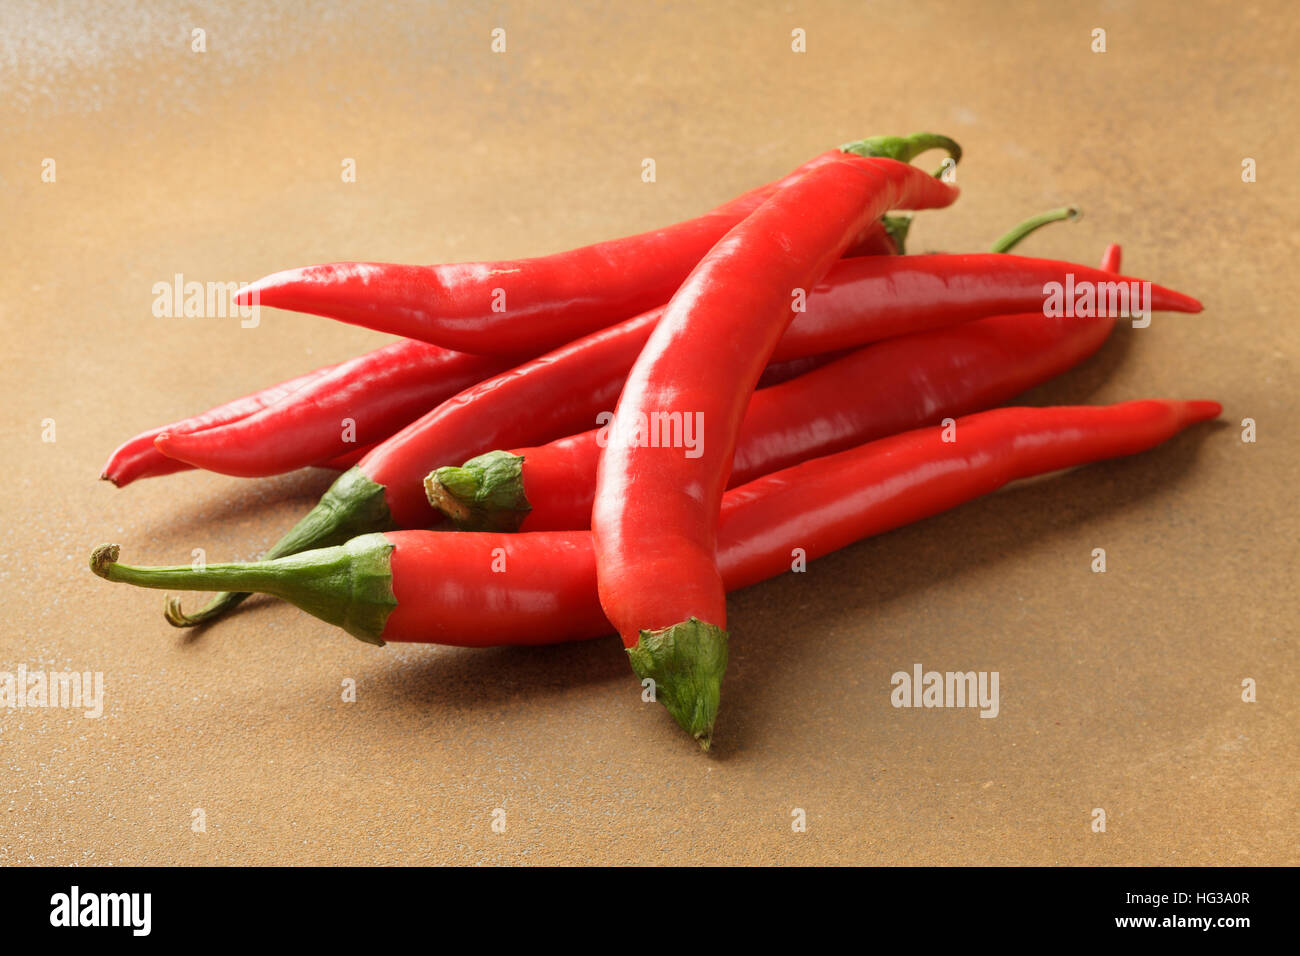 Red chillis - Stock Image